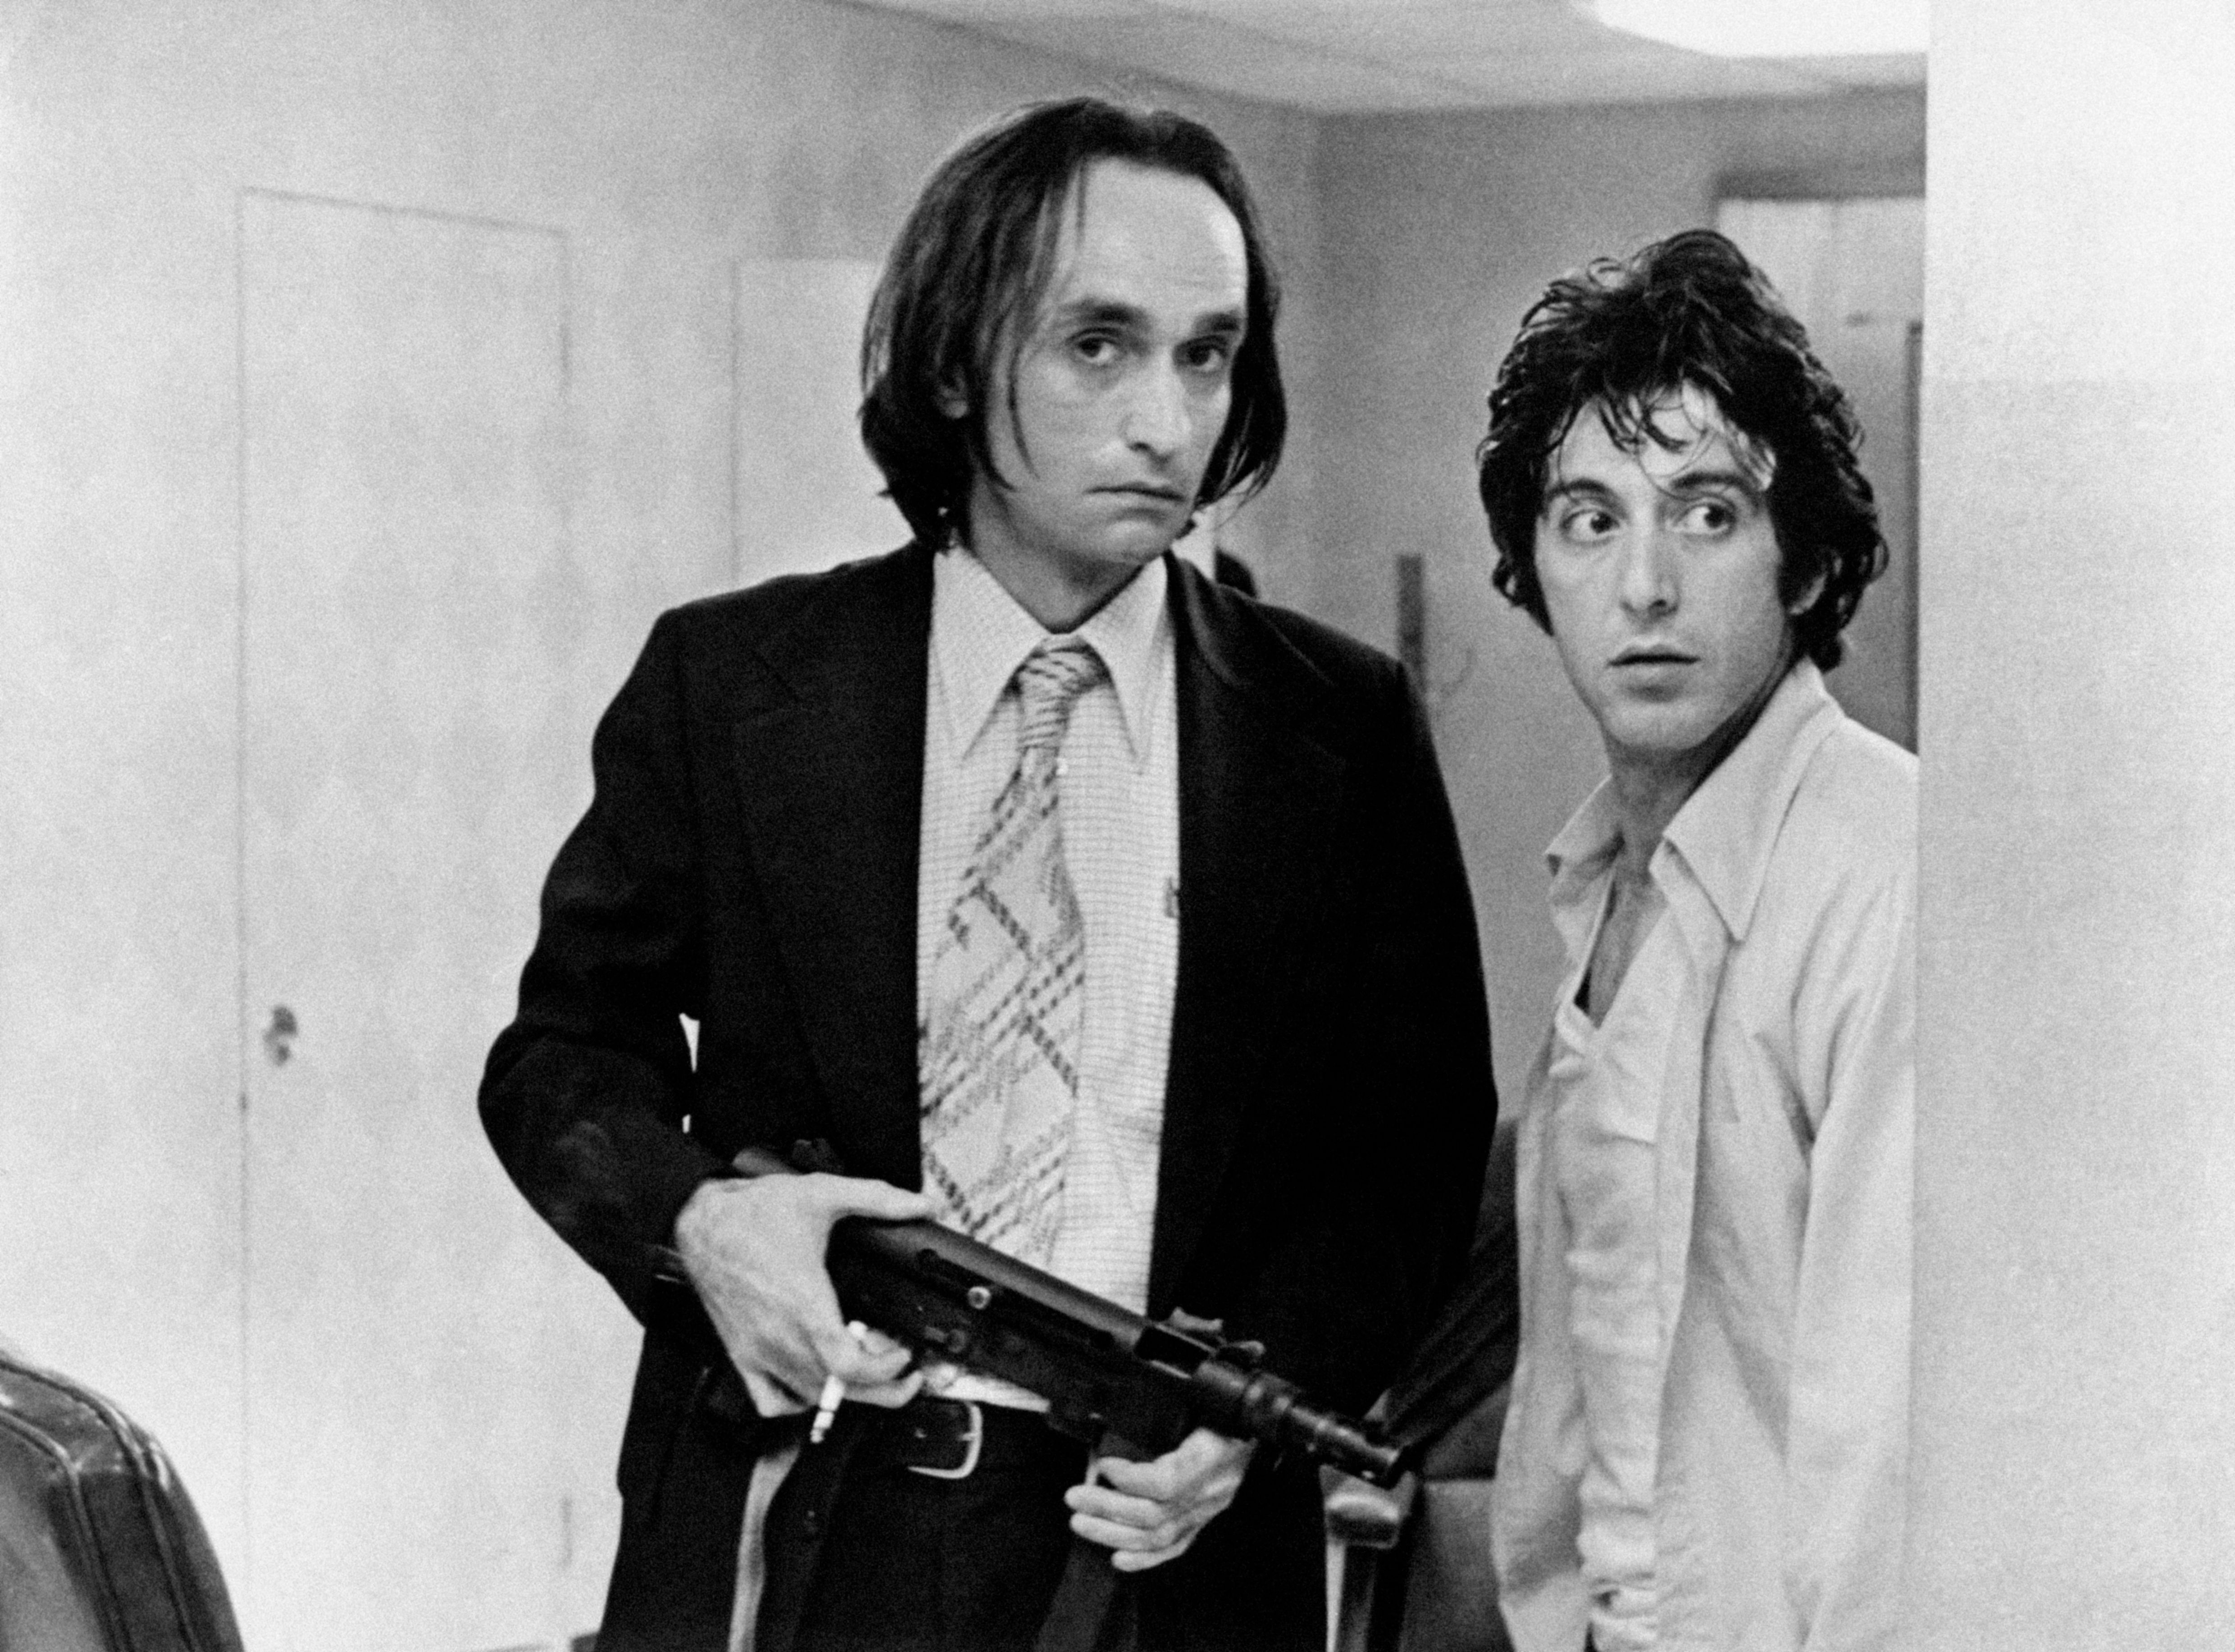 """John Cazale with Al Pacino on the set of the 1975 film """"Dog Day Afternoon"""" 